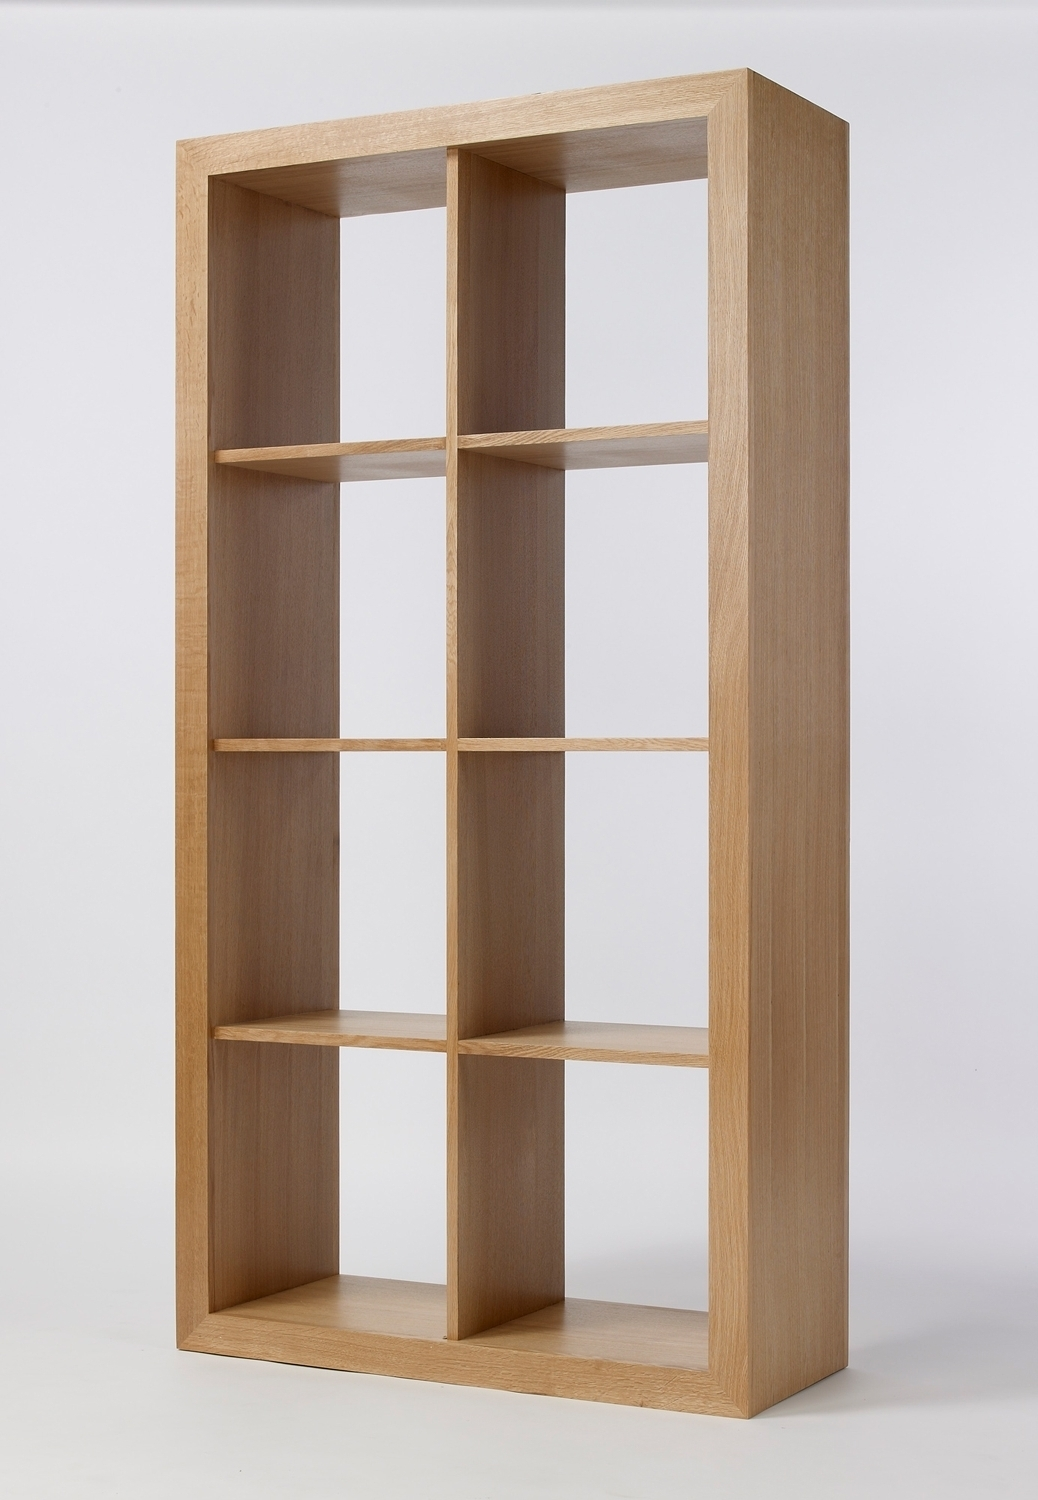 Well Liked Contemporary Oak Shelving Units Within Contemporary Oak Shelving Units • Shelves (View 7 of 15)